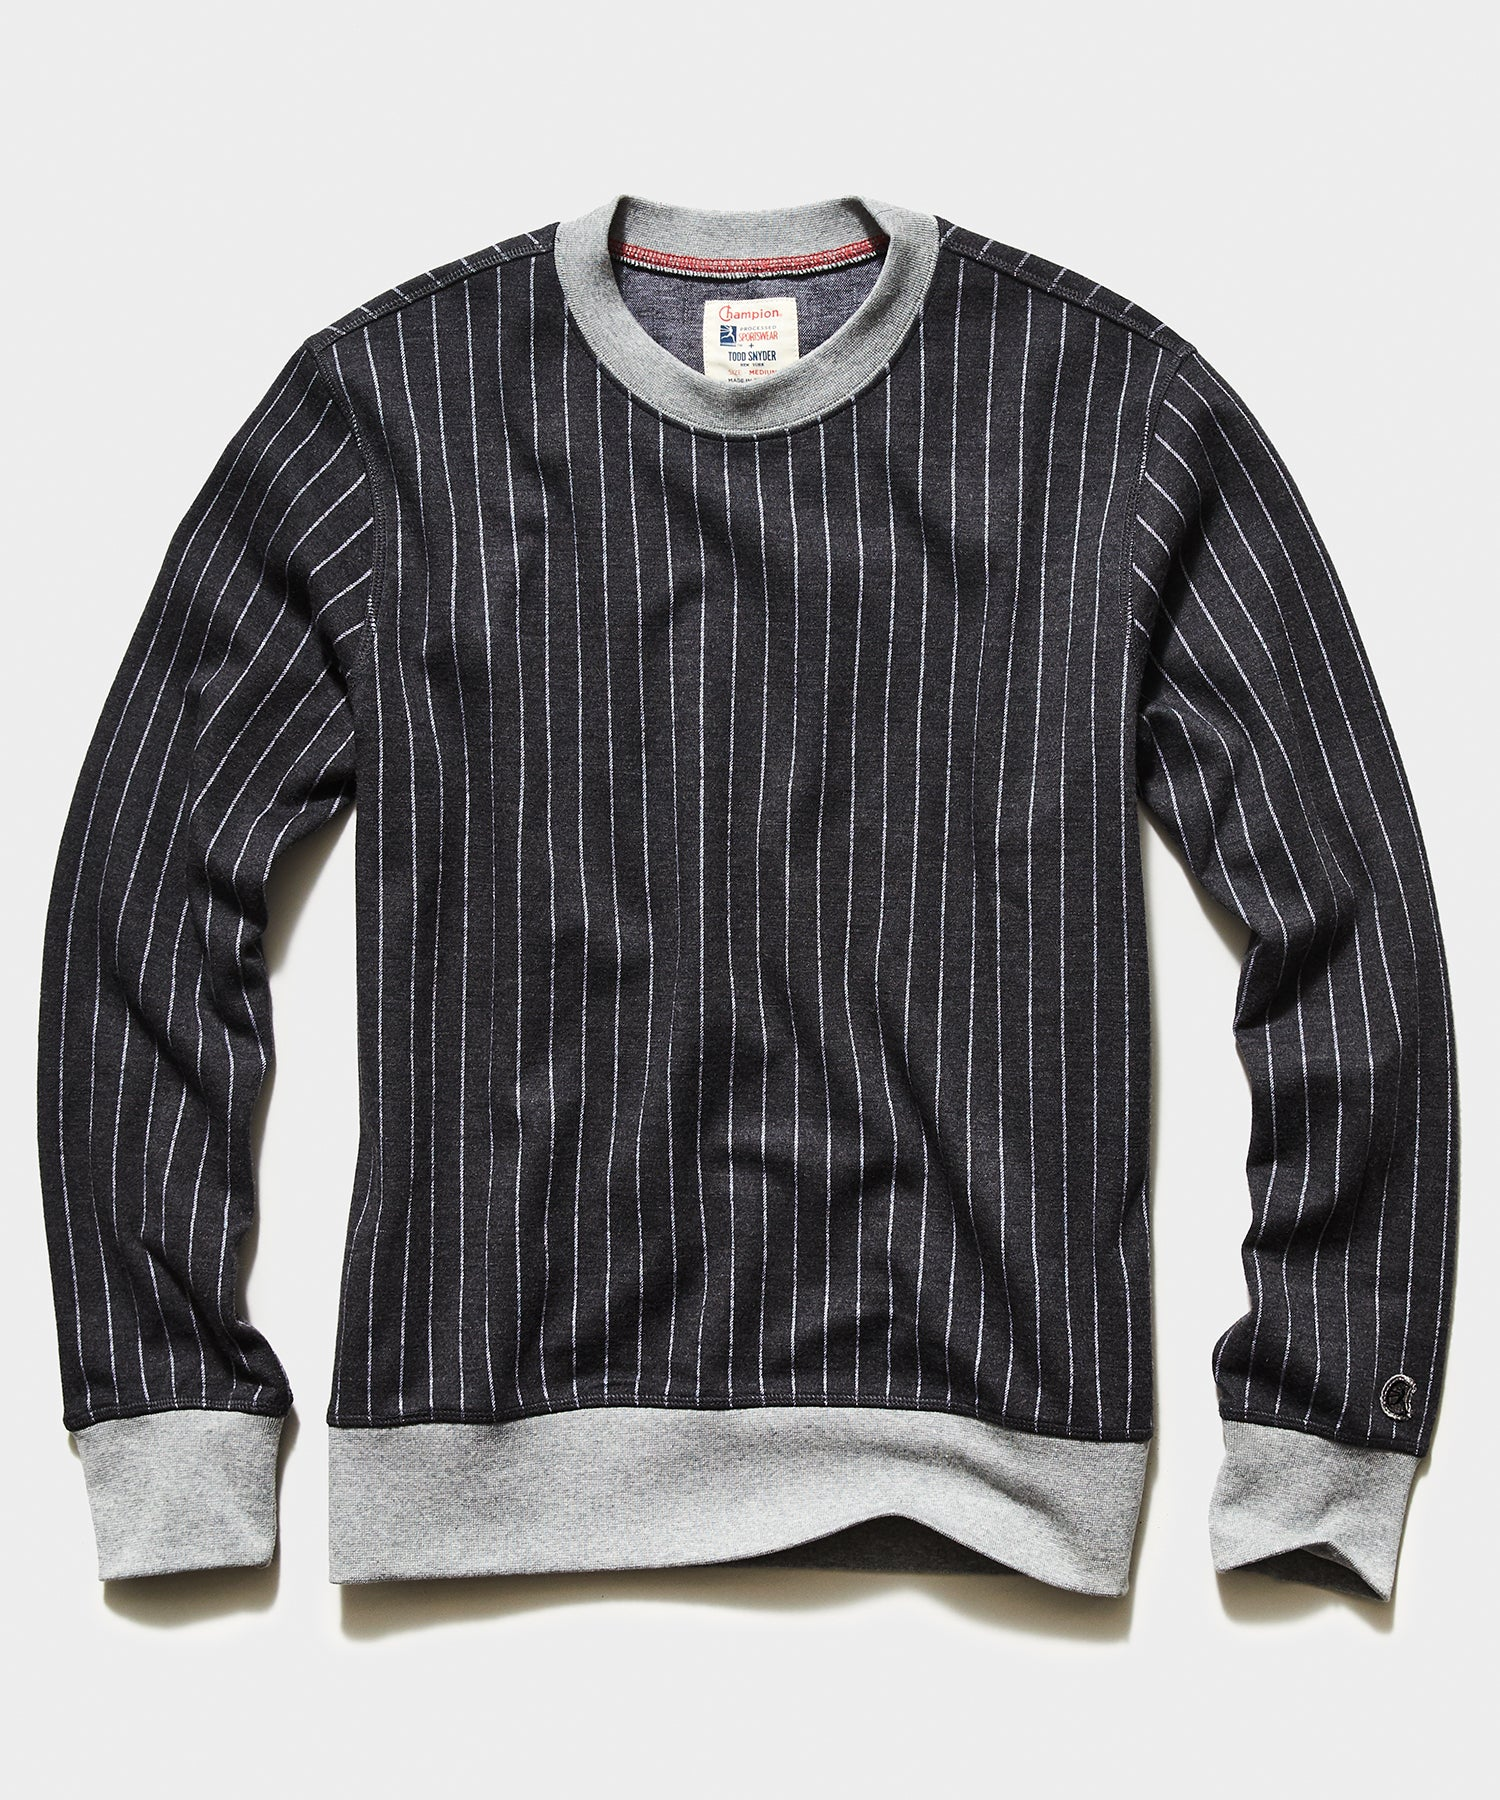 Champion Wool Pinstipe Crewneck Sweatshirt in Charcoal